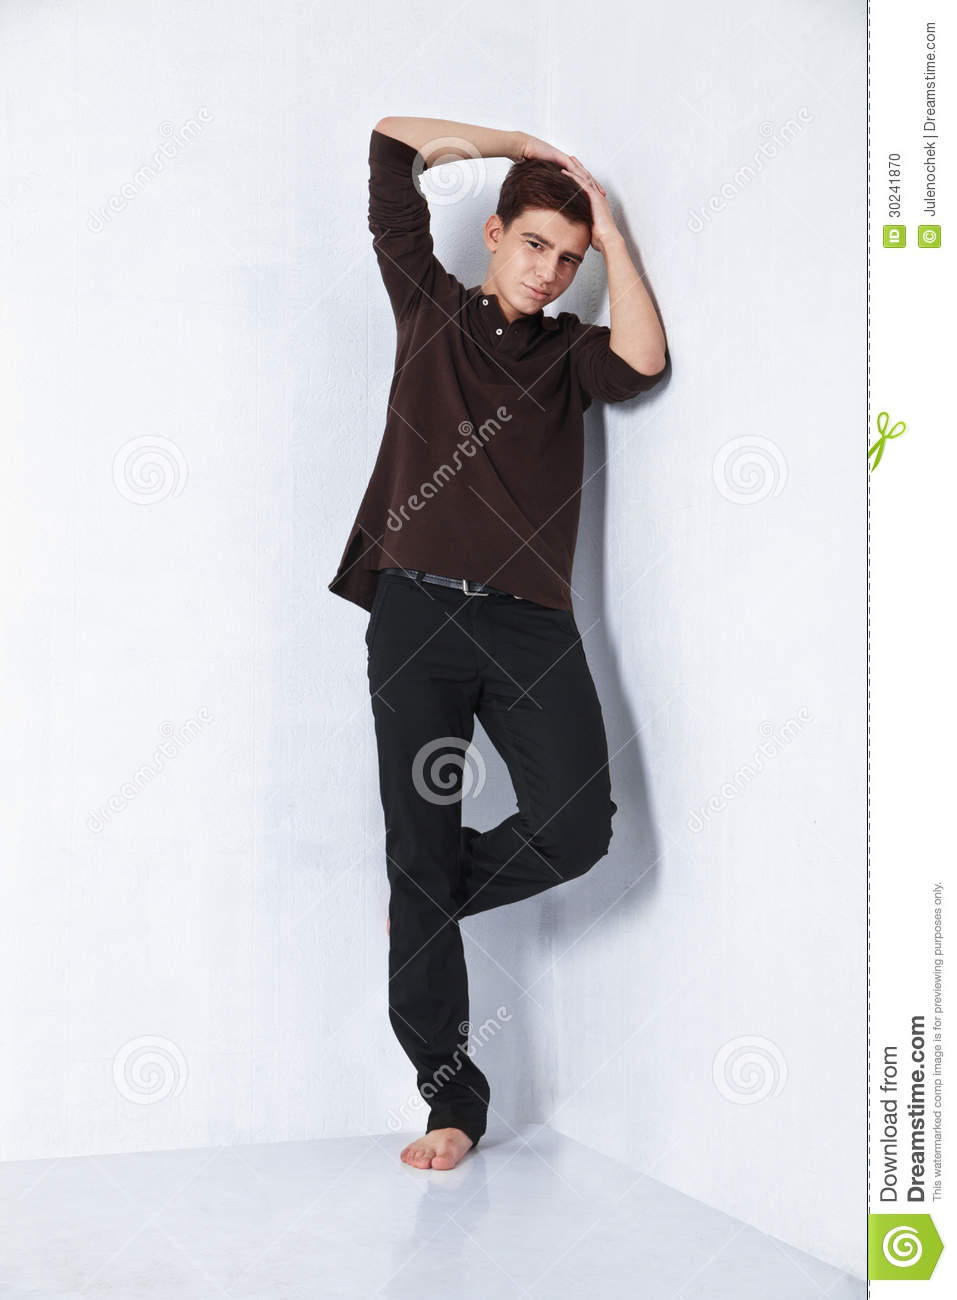 Young Male Fashion Model Posing In Casual Outfit Stock Photo - Image 30241870